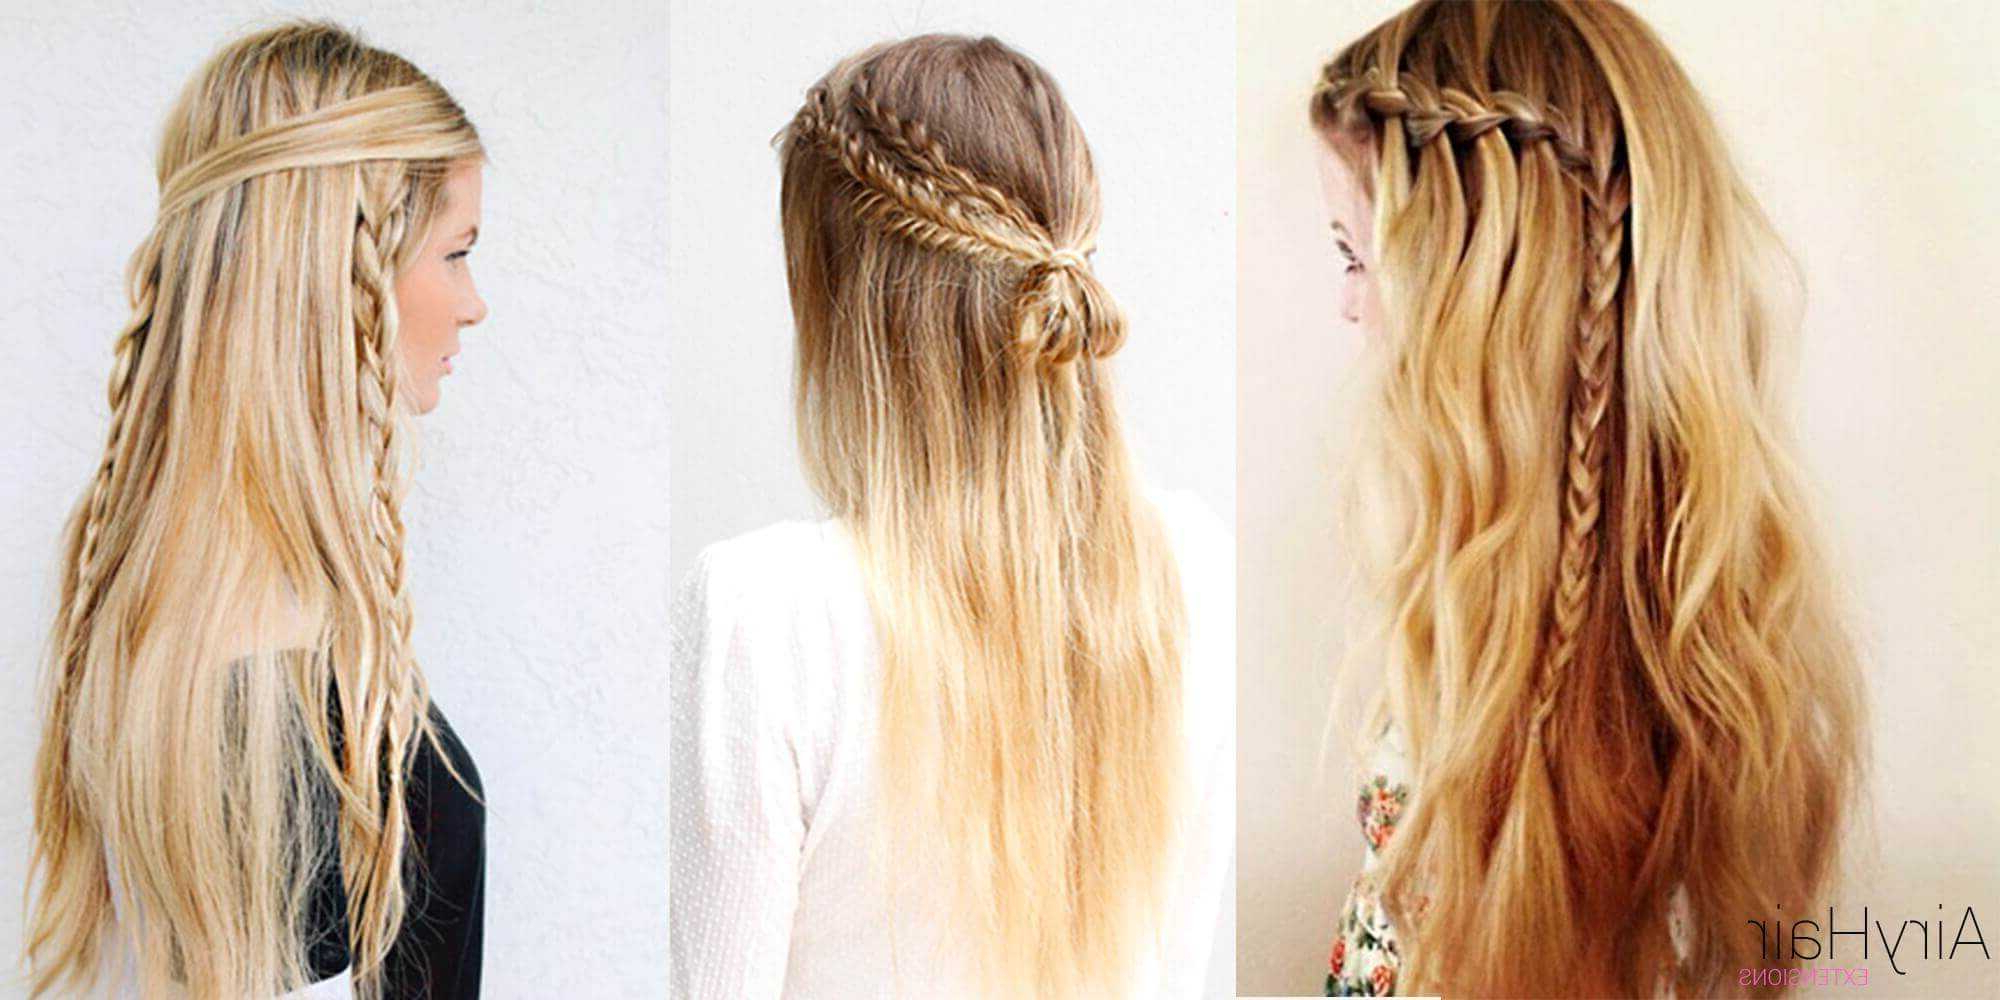 Widely Used Bohemian Medium Hairstyles Inside 10 Best Chic And Creative Boho Hairstyles (View 18 of 20)